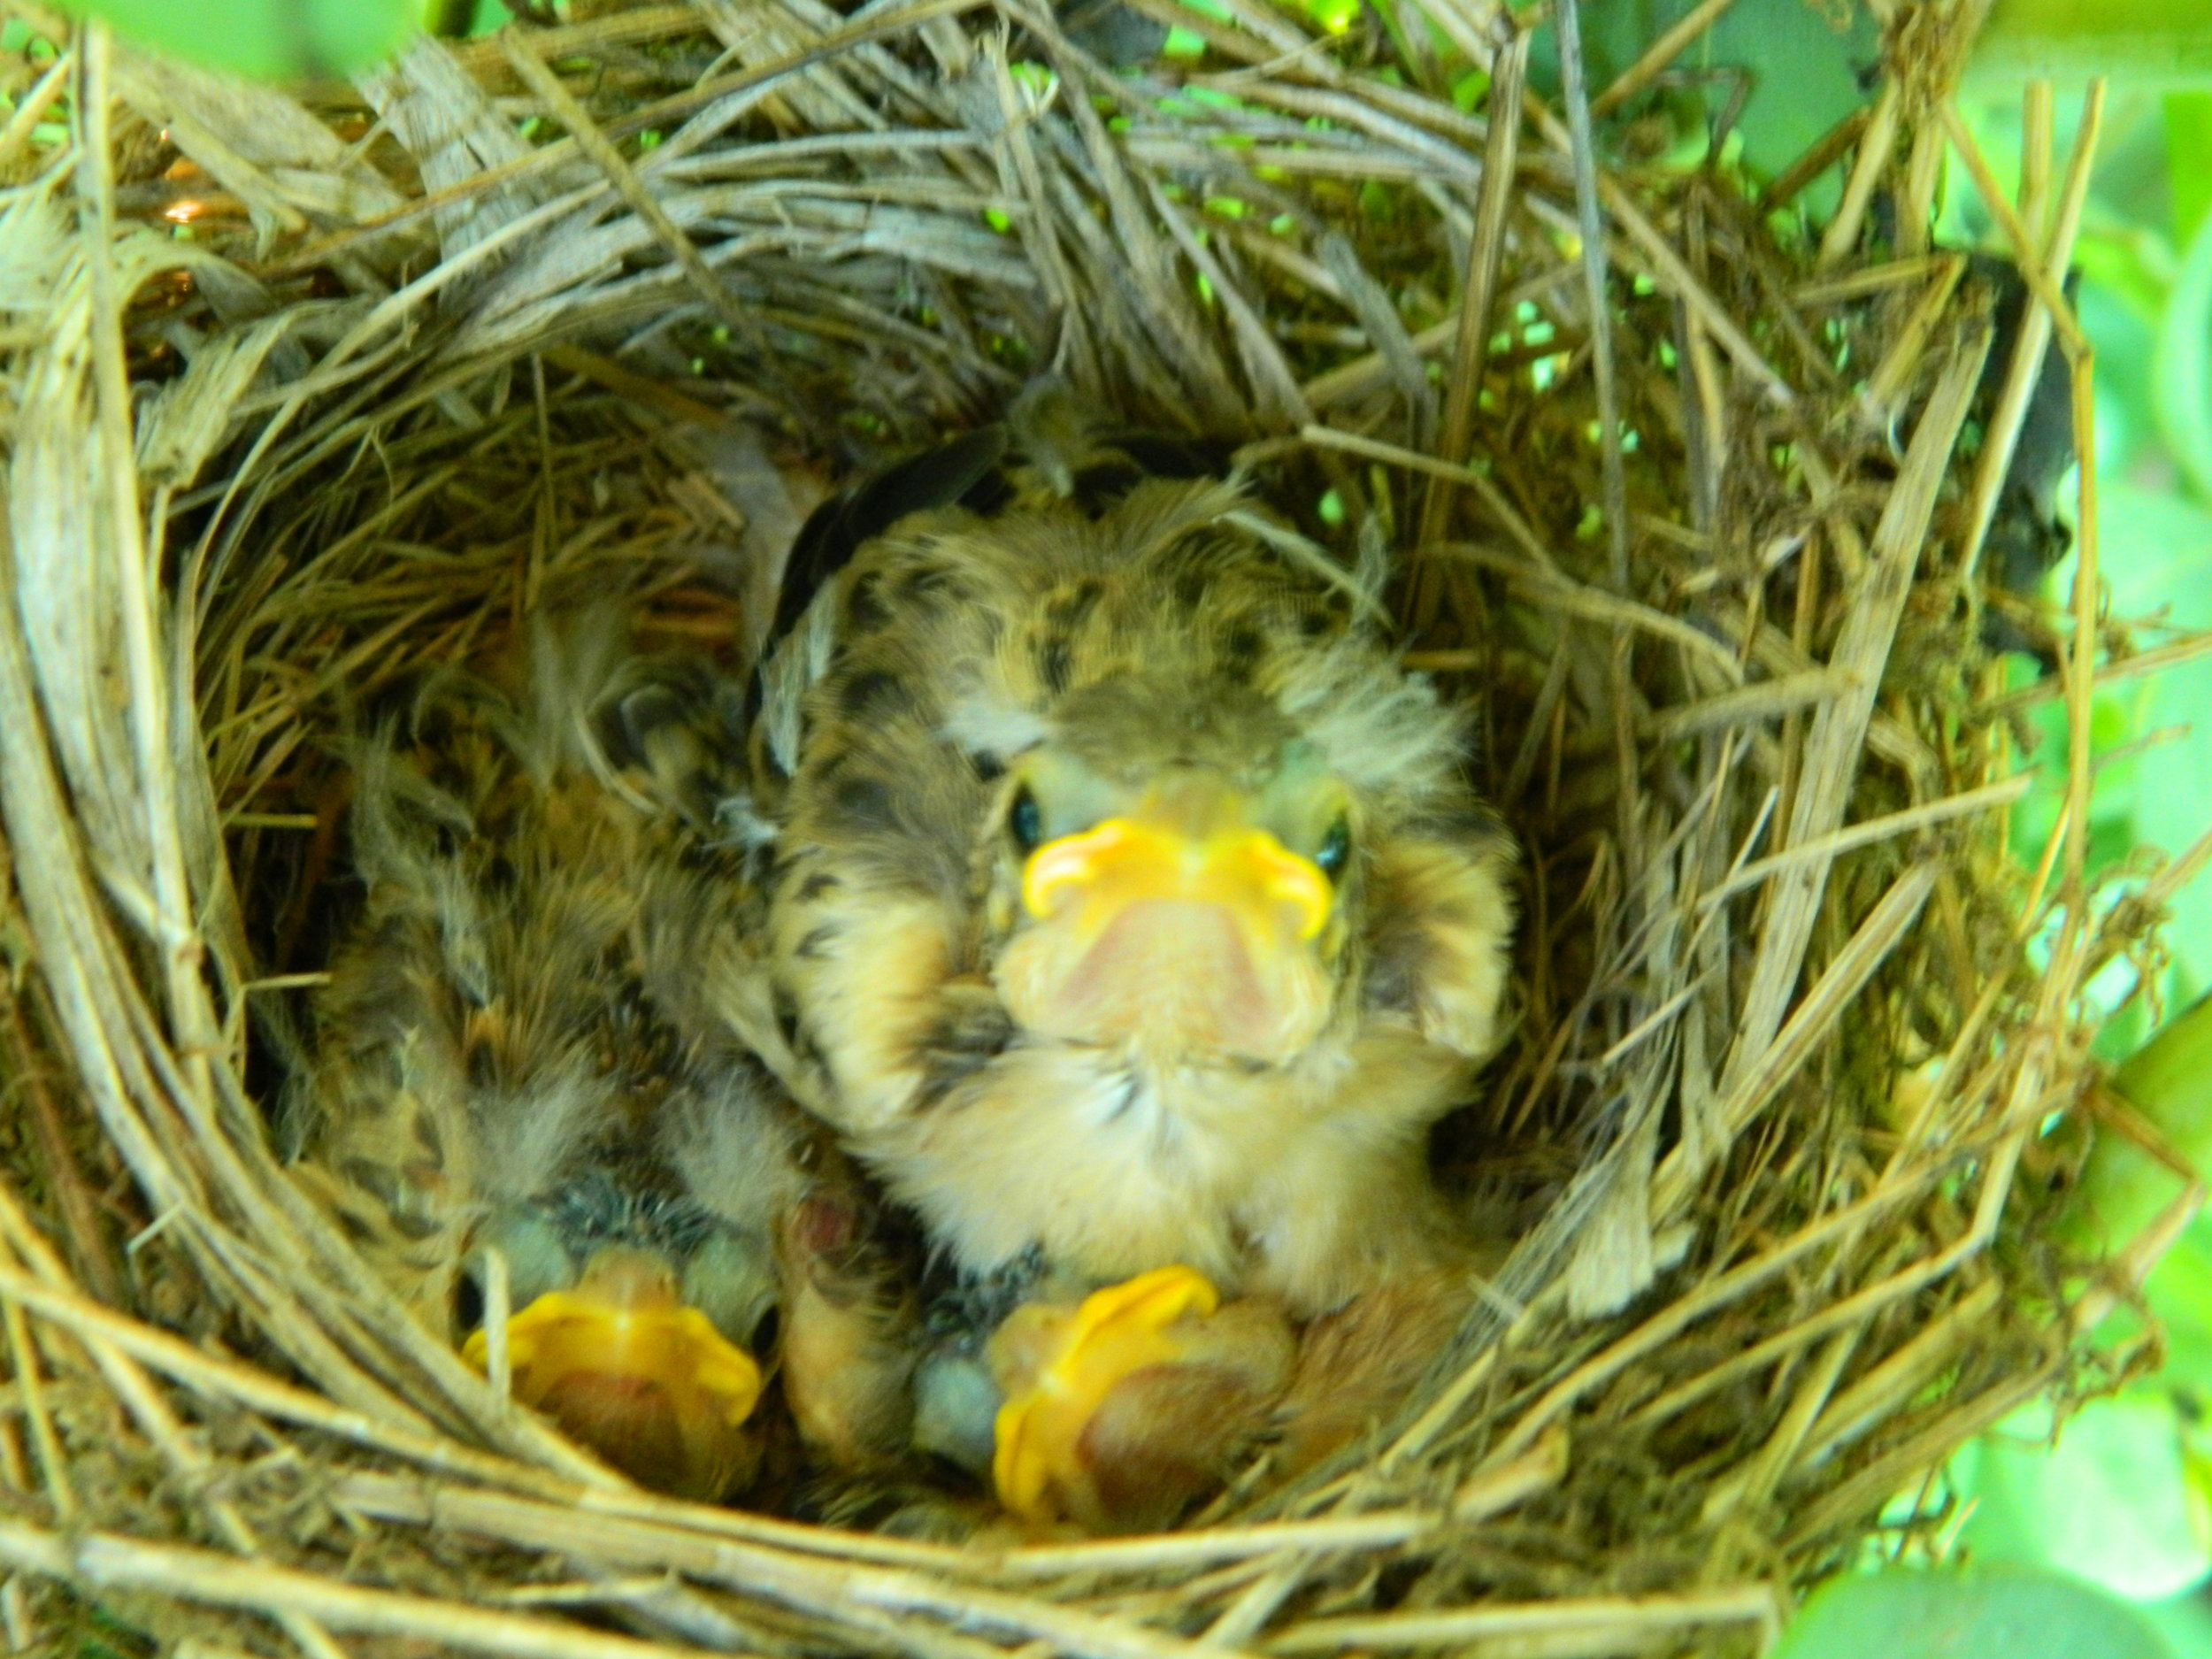 These dickcissel chicks are 8 days old and close to leaving the nest. Staying put a few extra days could make them better at surviving once they're out of the nest... but it also makes them easier targets for predators. Photo by Carolyn Byers